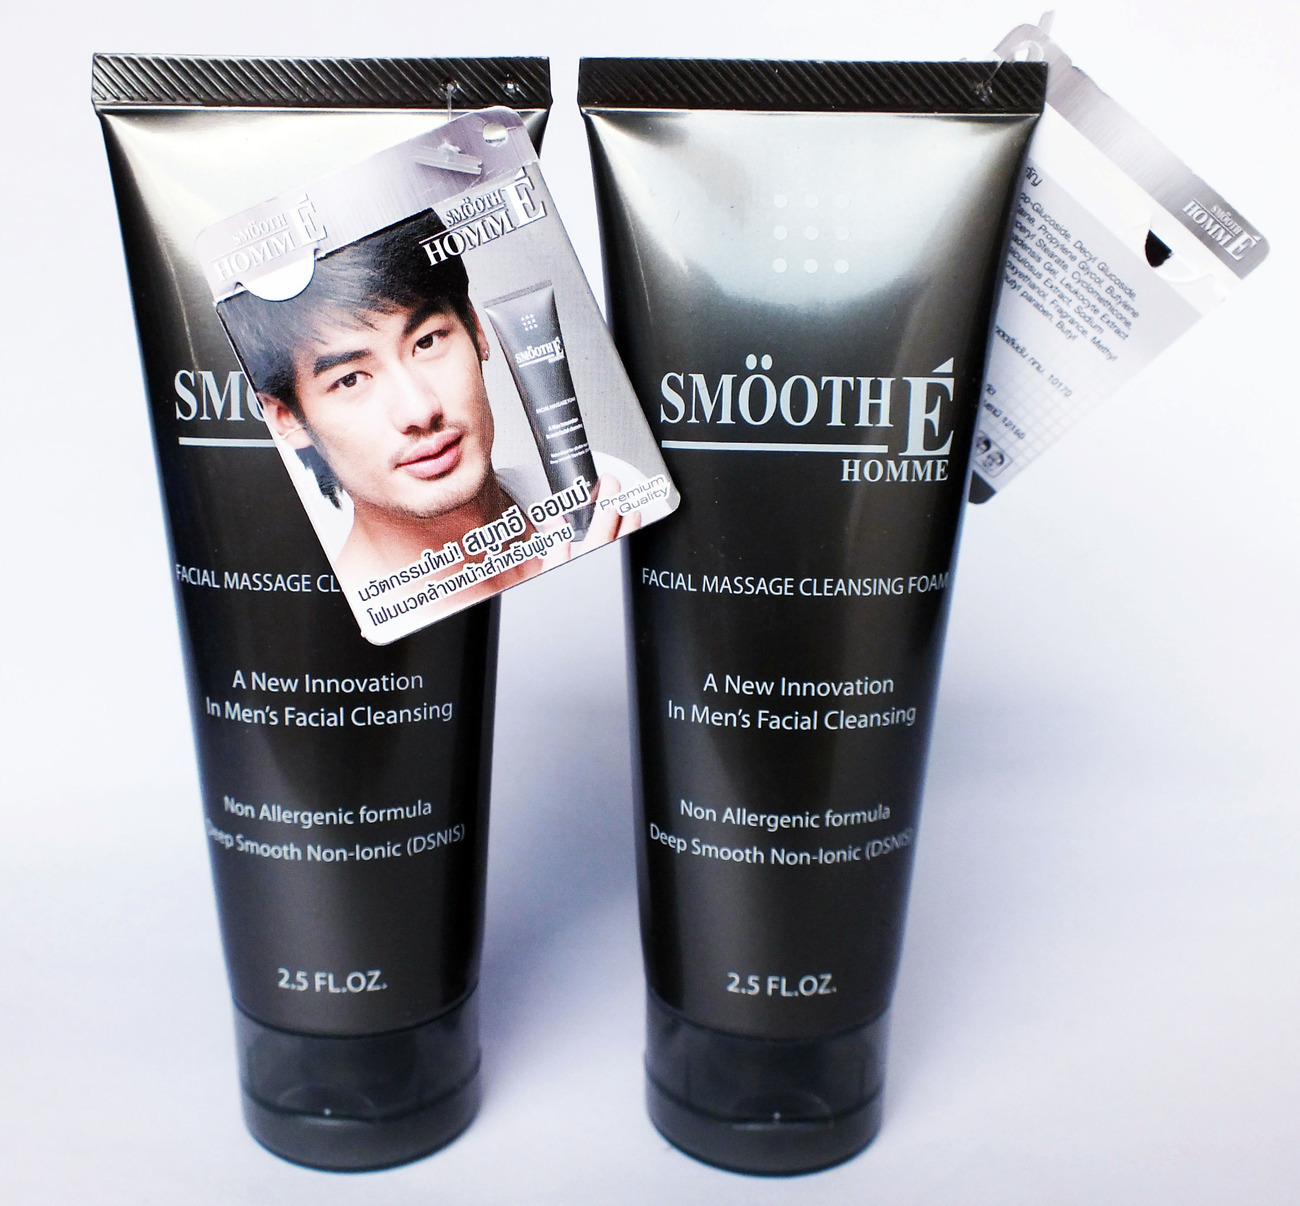 NEW SMOOTH E HOMME MEN FACIAL MASSAGE CLEANSING FOAM Acne Clear Whitening 2.5 Oz